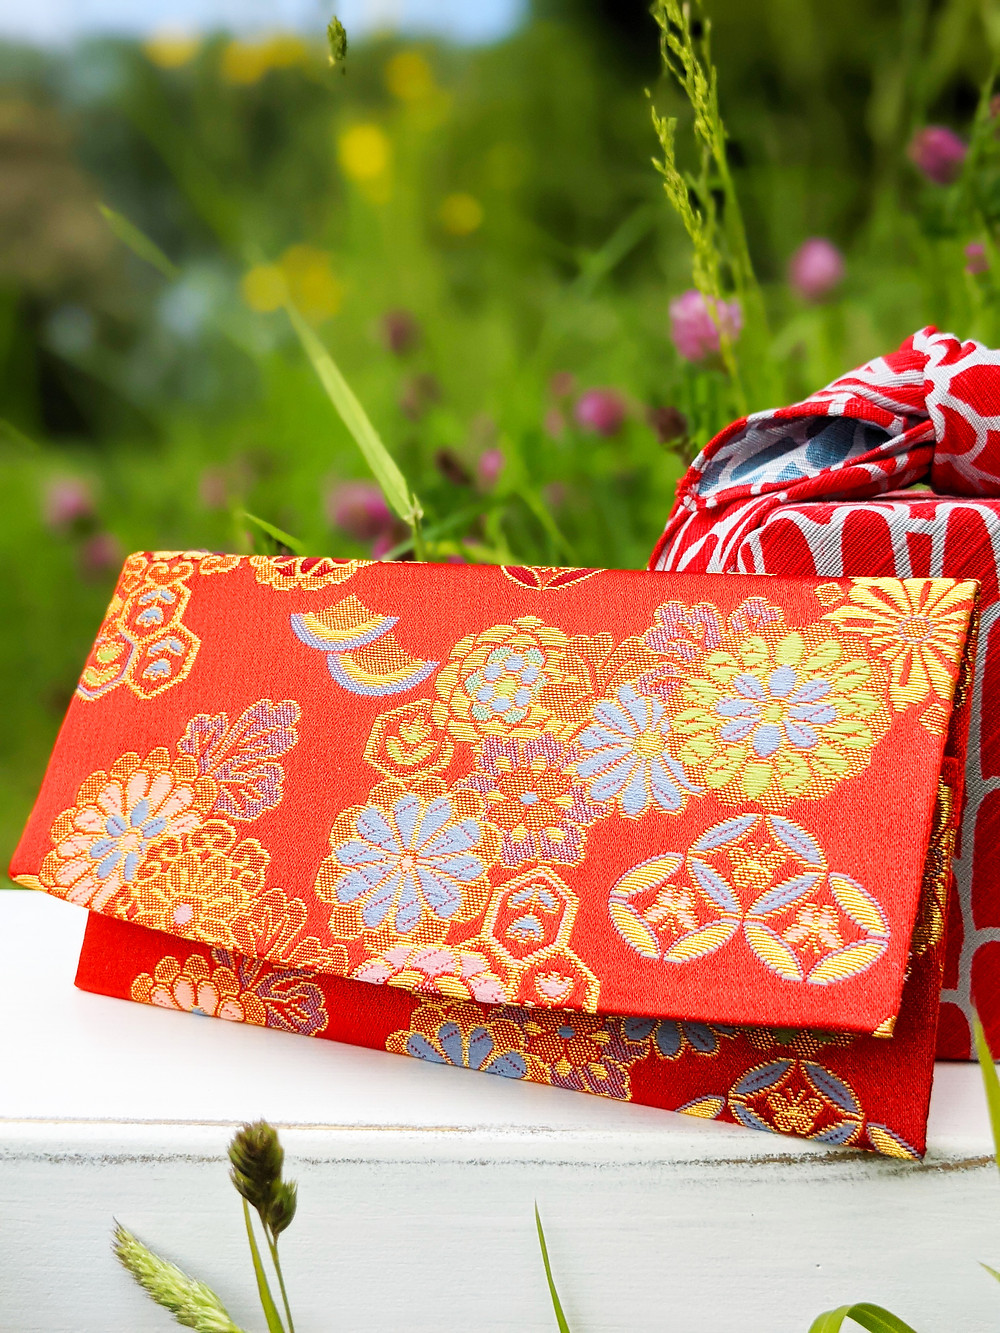 kimono fabric wallet surrounded by wildflowers